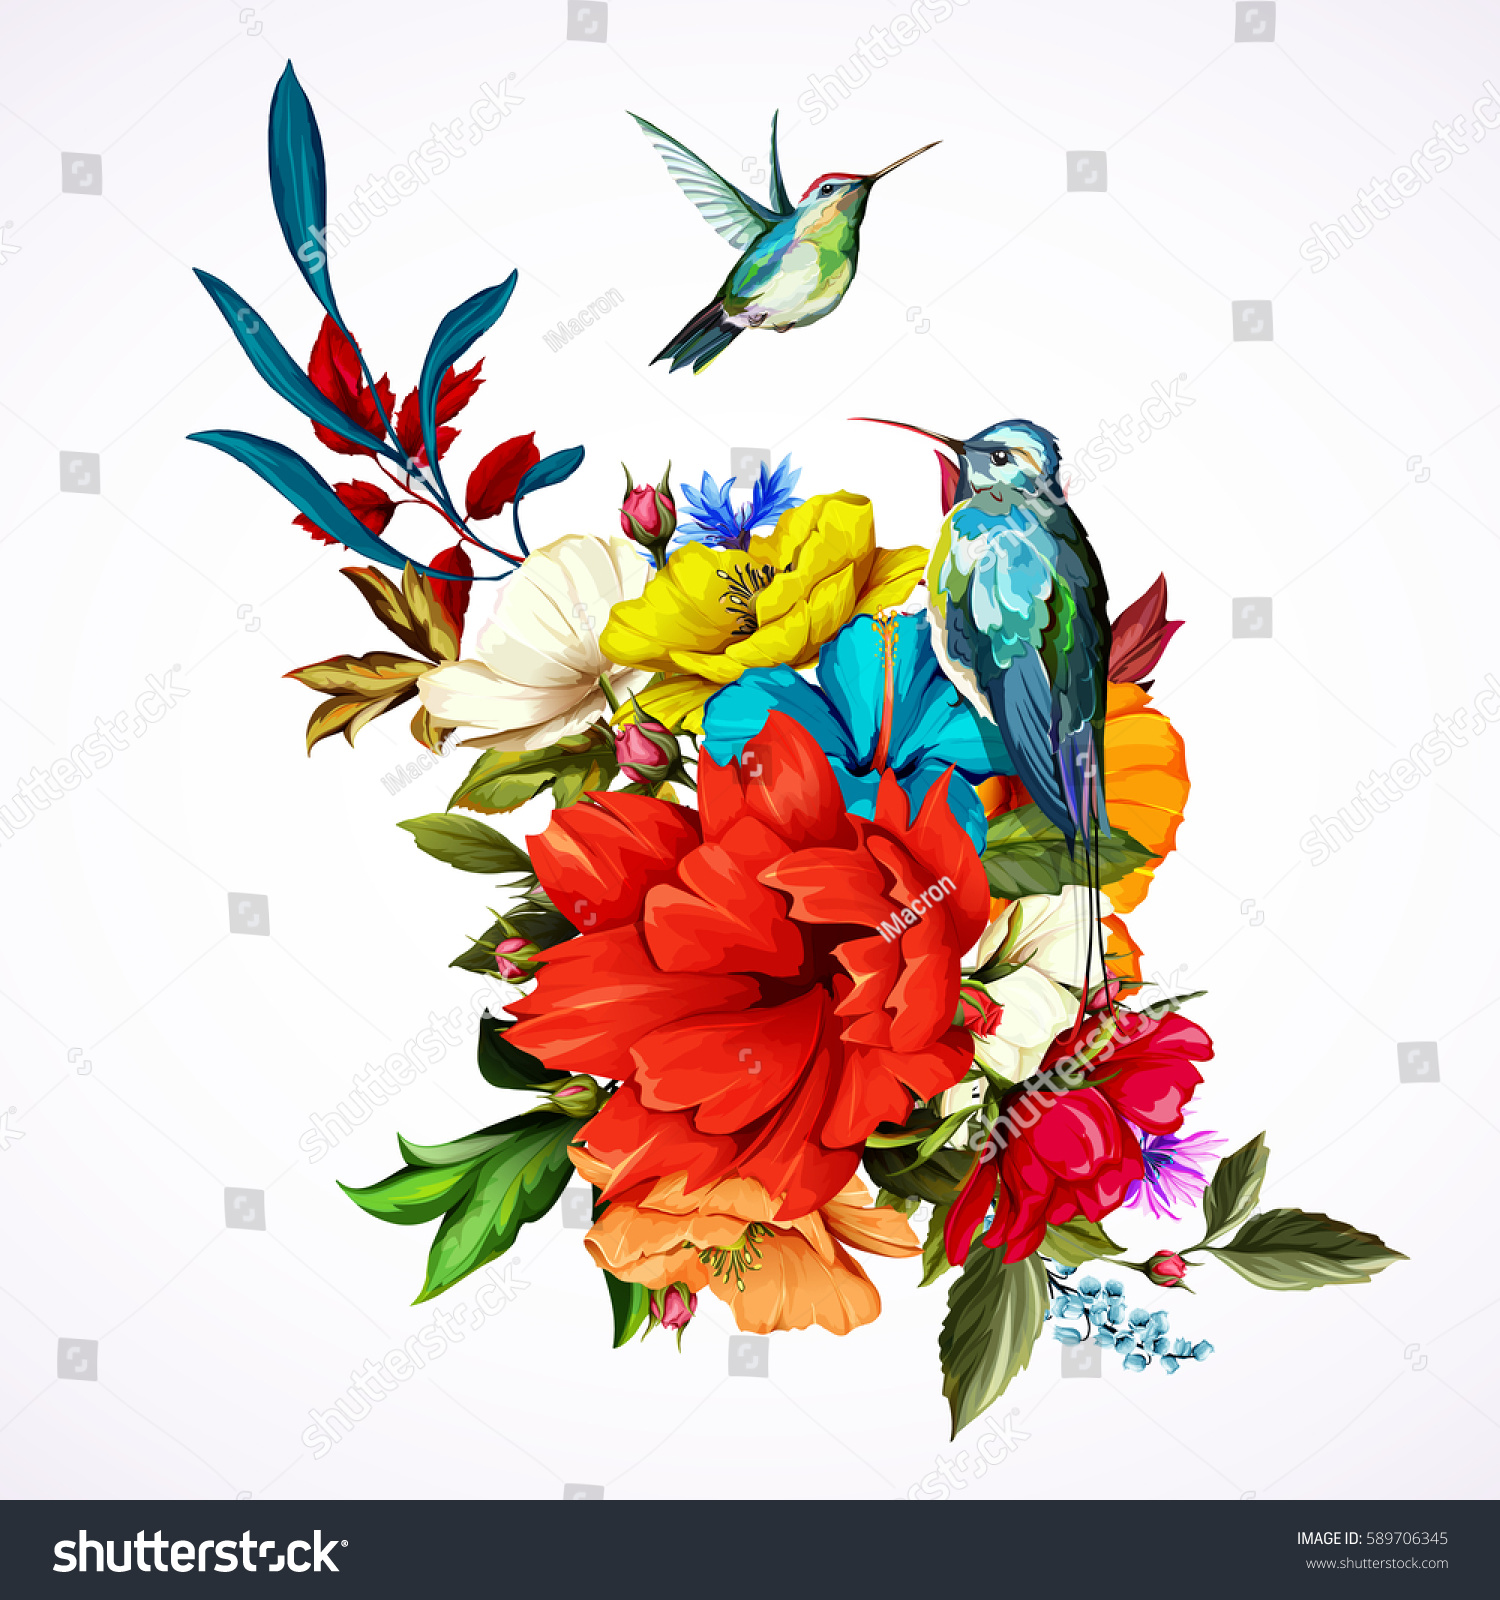 Bouquet flowers roses poppy flowers cornflowers stock vector hd bouquet of flowers with roses poppy flowers cornflowers and two hummingbirds around this izmirmasajfo Images